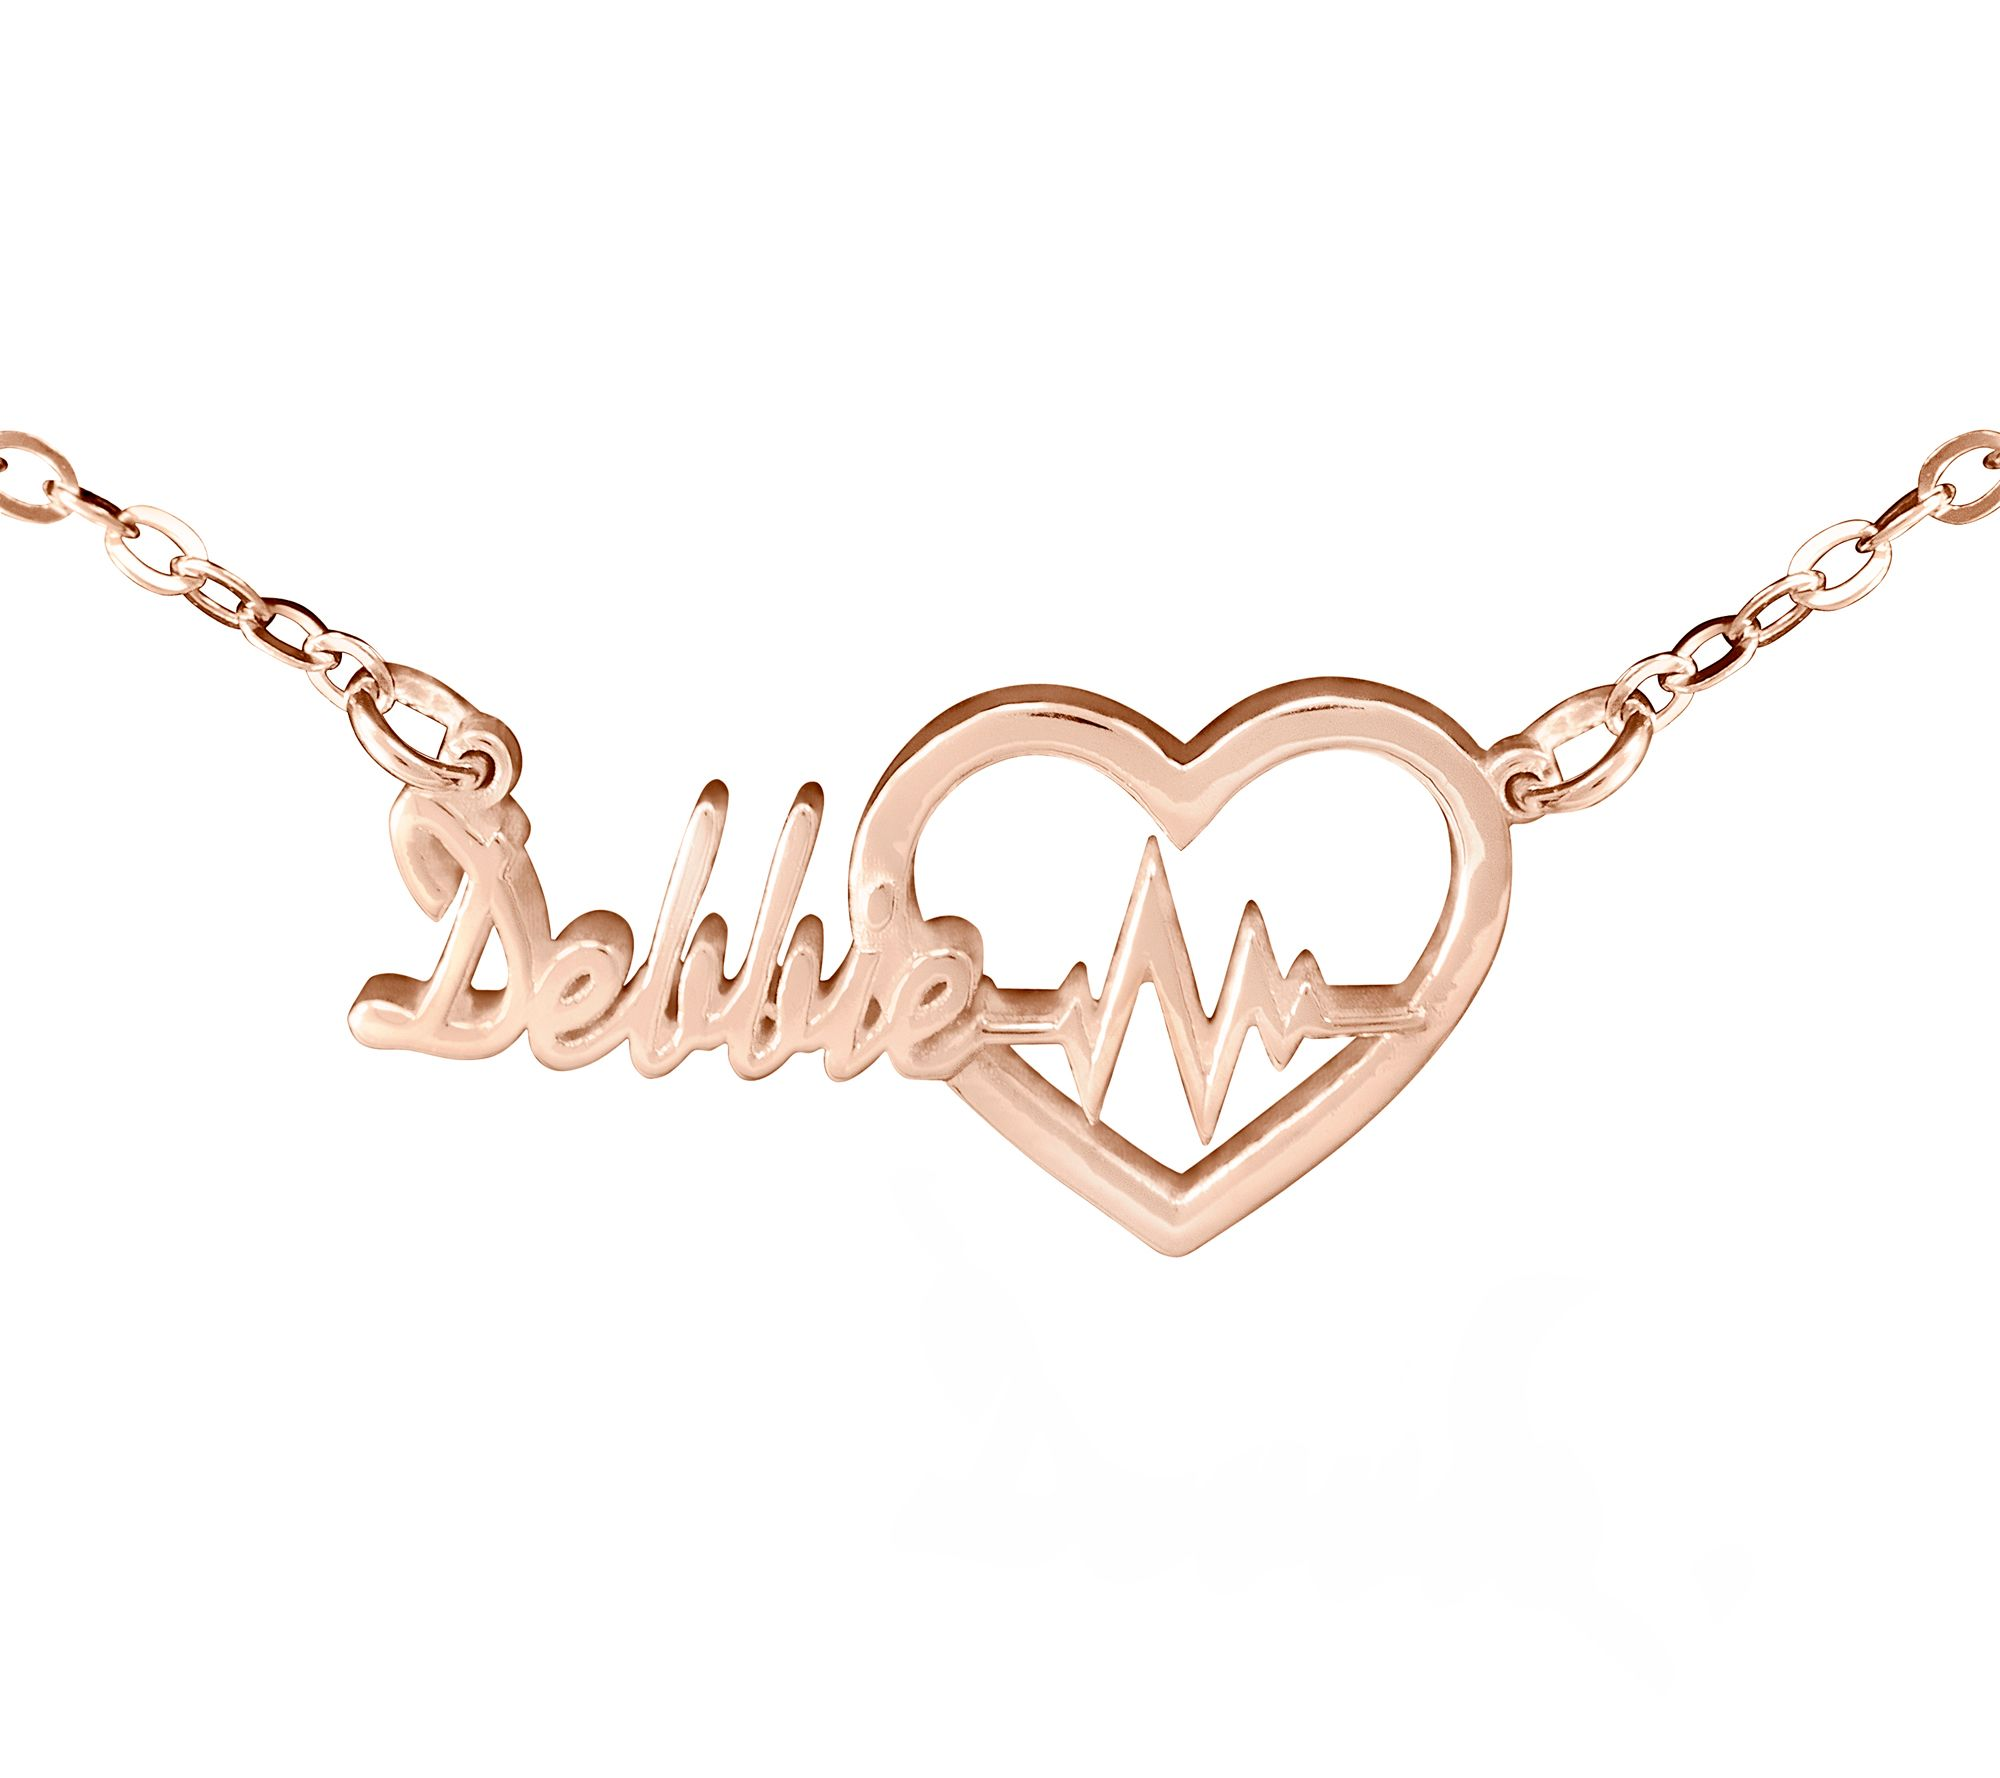 75797079067cb 14K Rose Gold-Plated Personalized Heartbeat Nam e Necklace — QVC.com